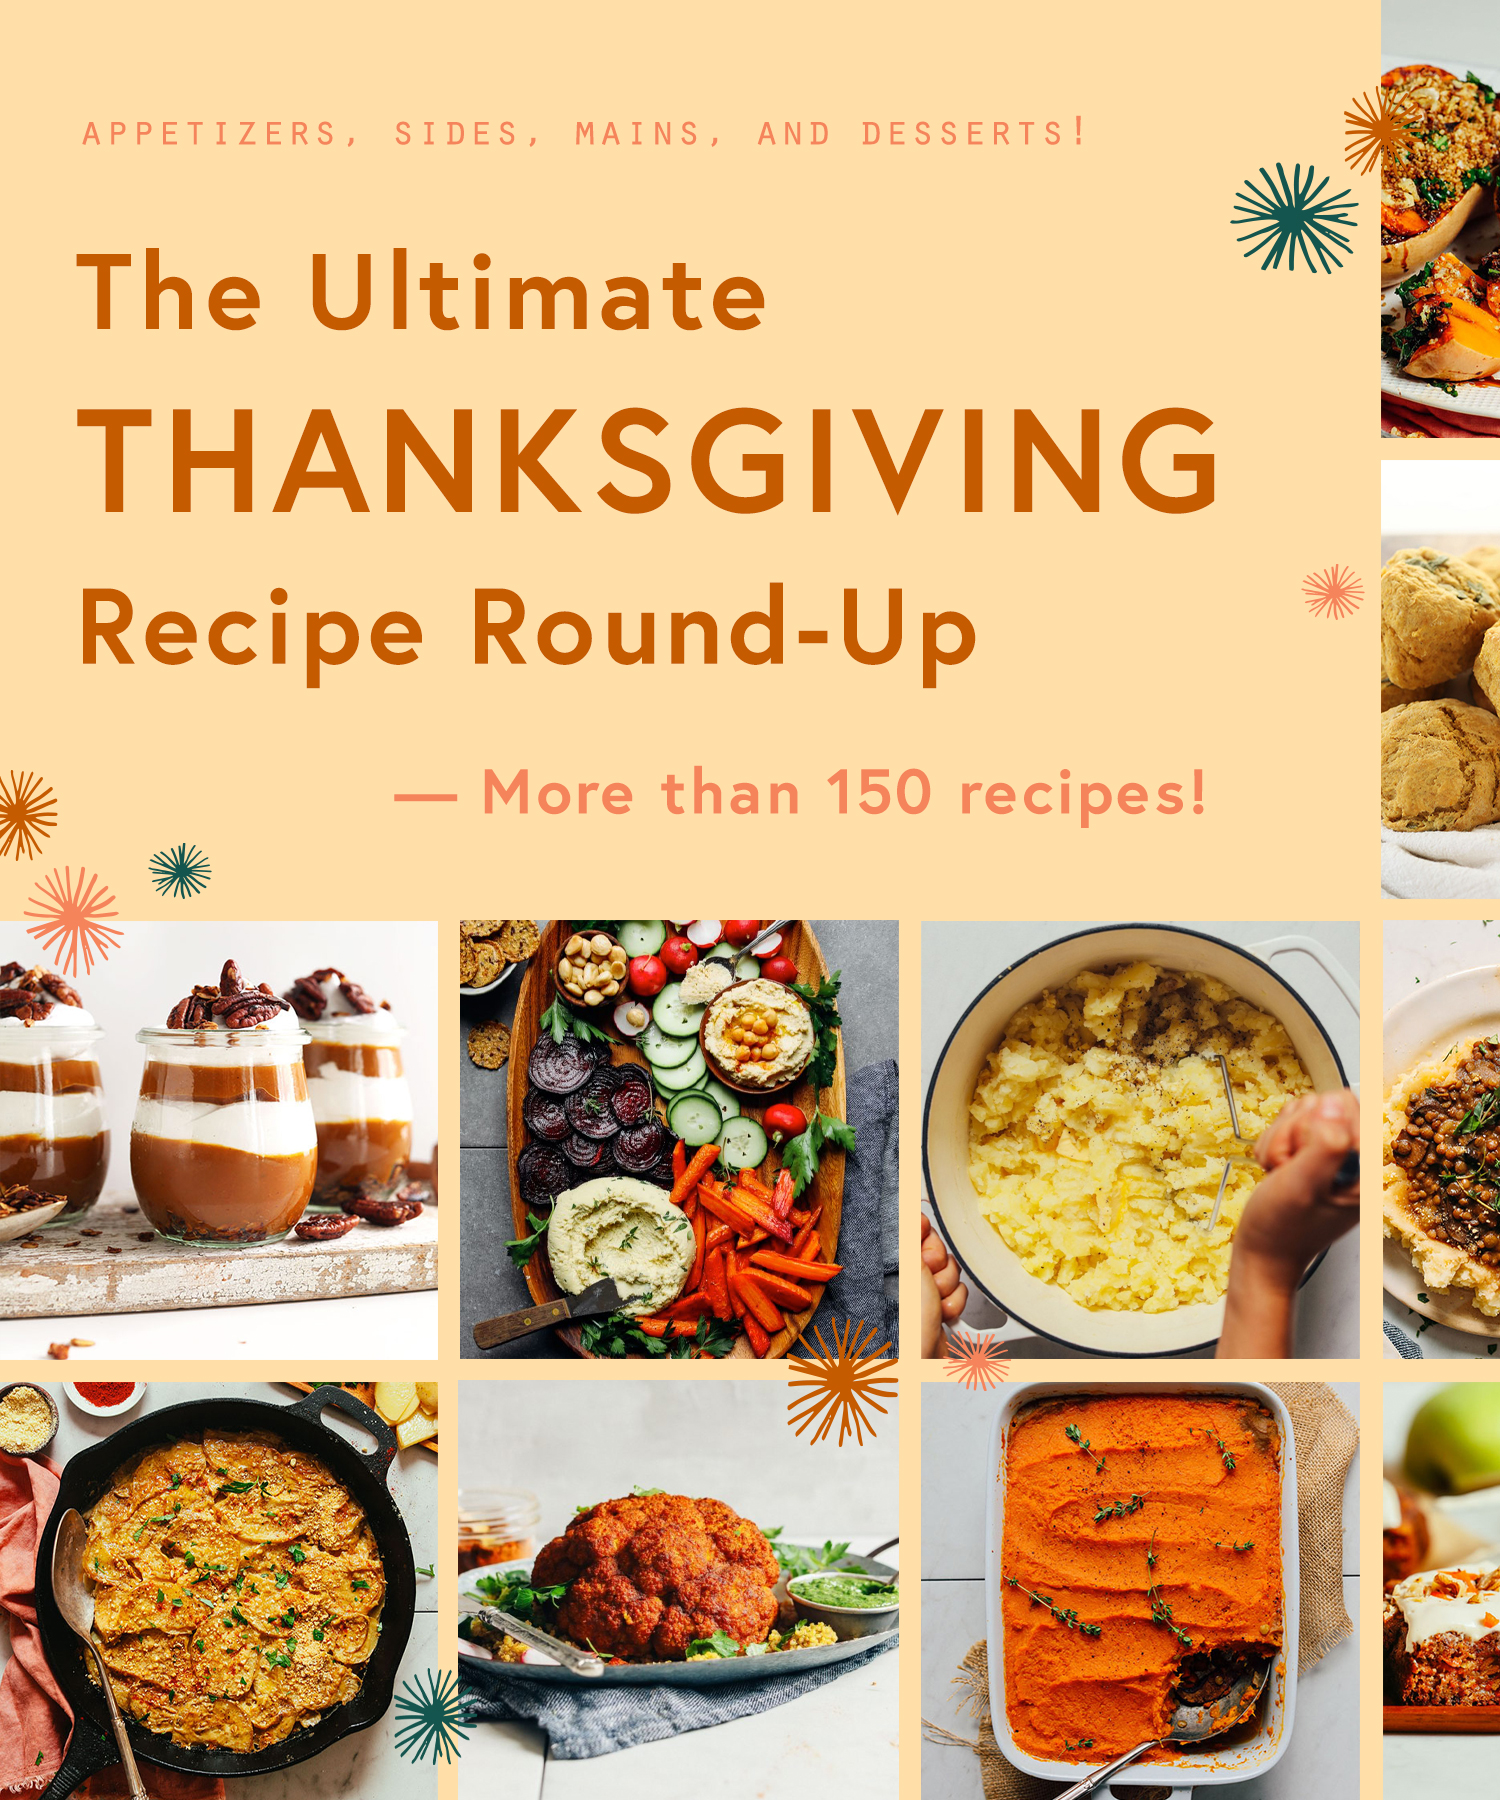 Assortment of Thanksgiving recipes including appetizers, sides, mains, and desserts